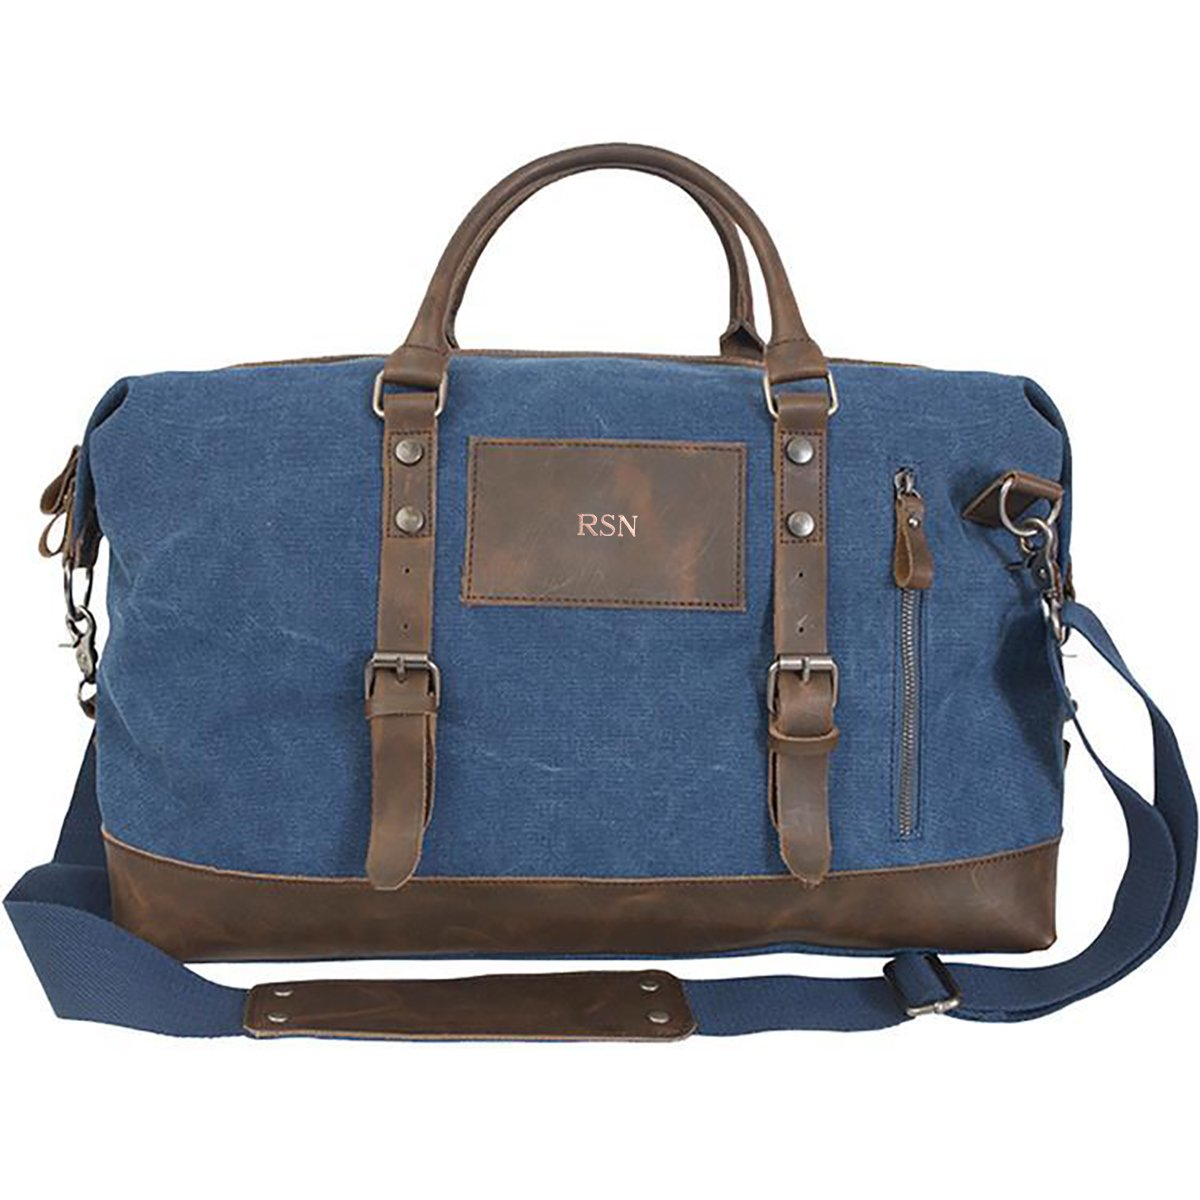 A Gift Personalized Personalized Blue Canvas and Leather Weekender Duffel Bag - Rose Gold